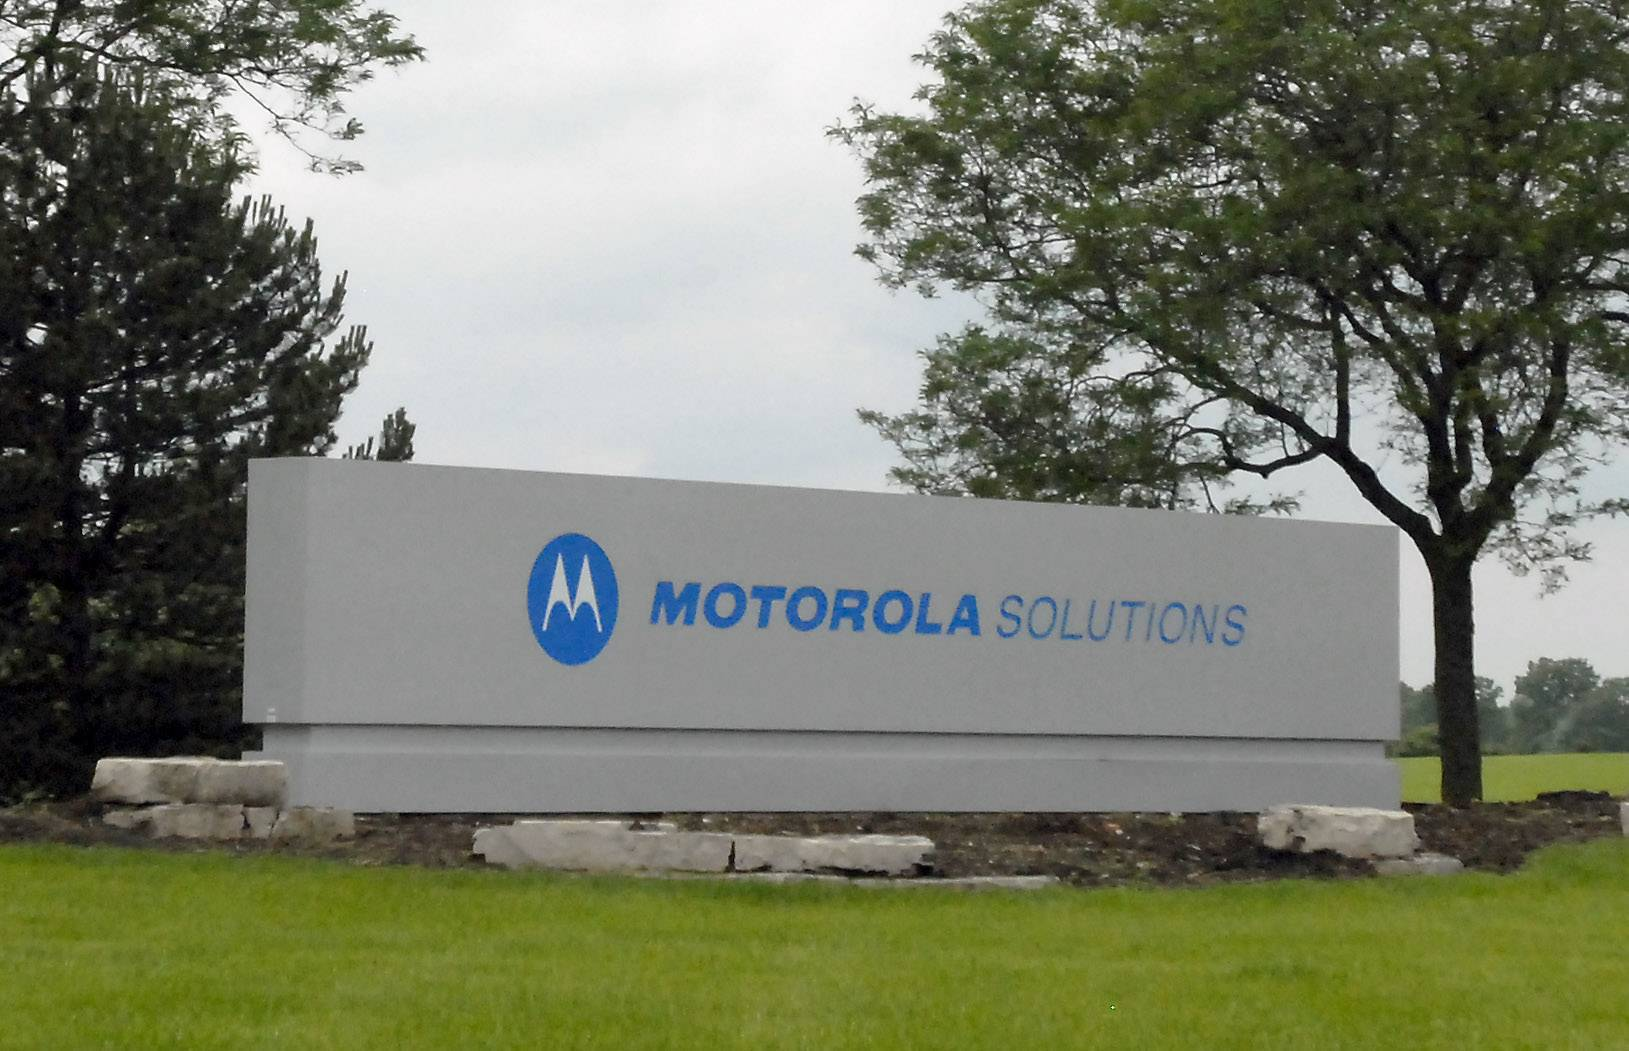 The U.S. International Trade Commission will hear Motorola Solutions' patent infringement case against China-based Hytera.